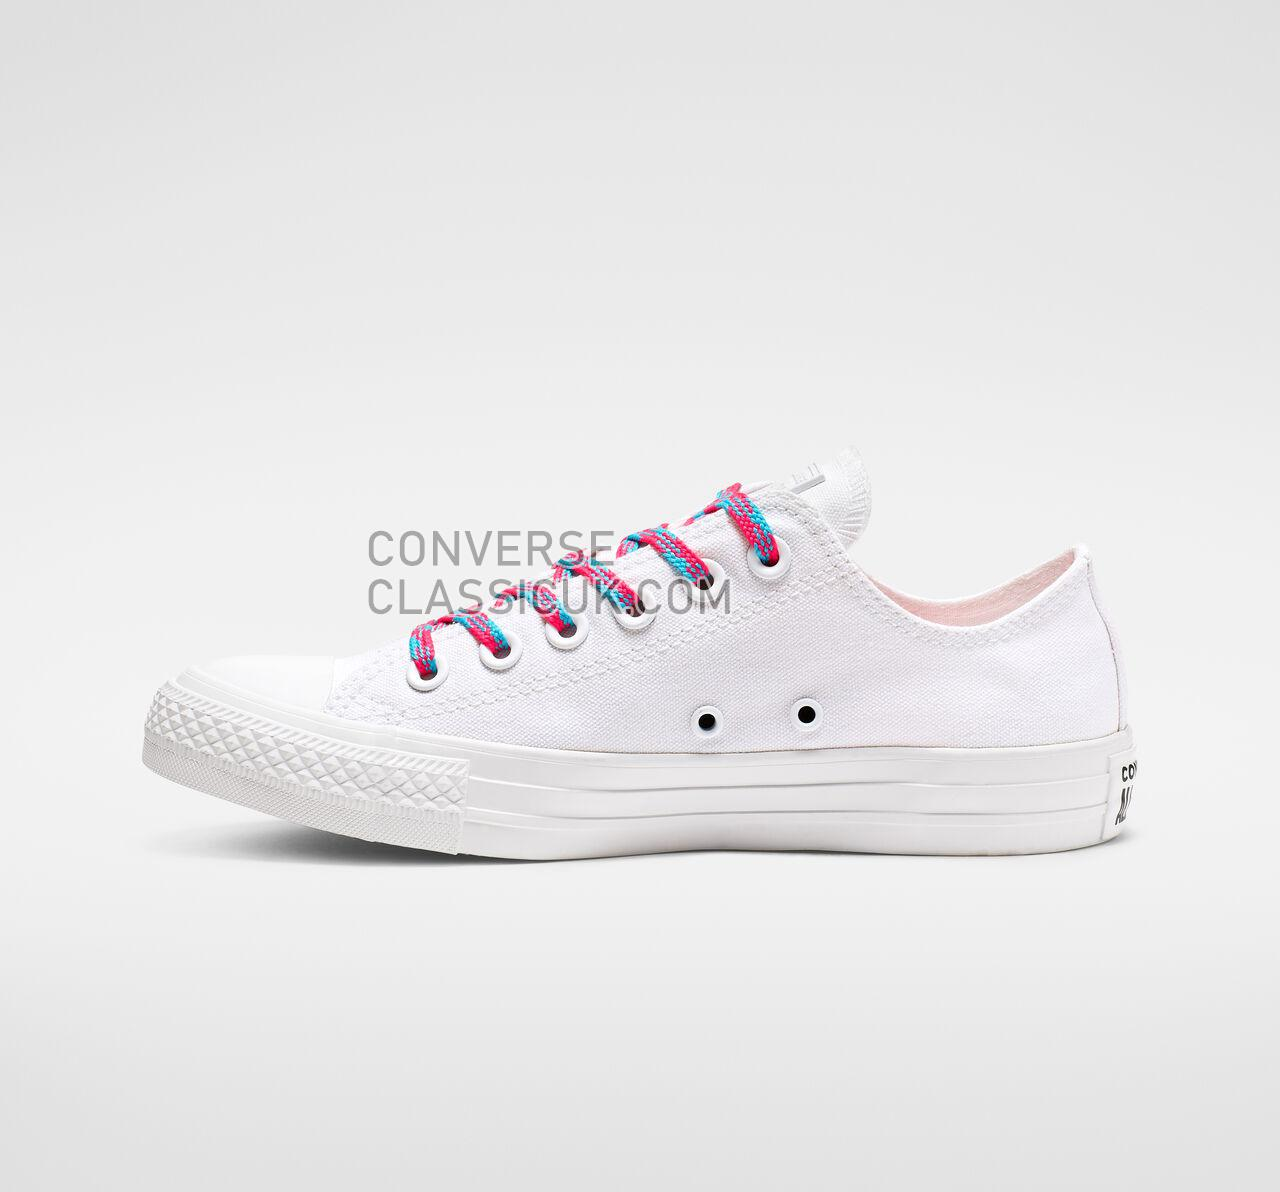 Converse Chuck Taylor All Star Glow Up Low Top Womens 564117C White/Racer Pink/Gnarly Blue Shoes